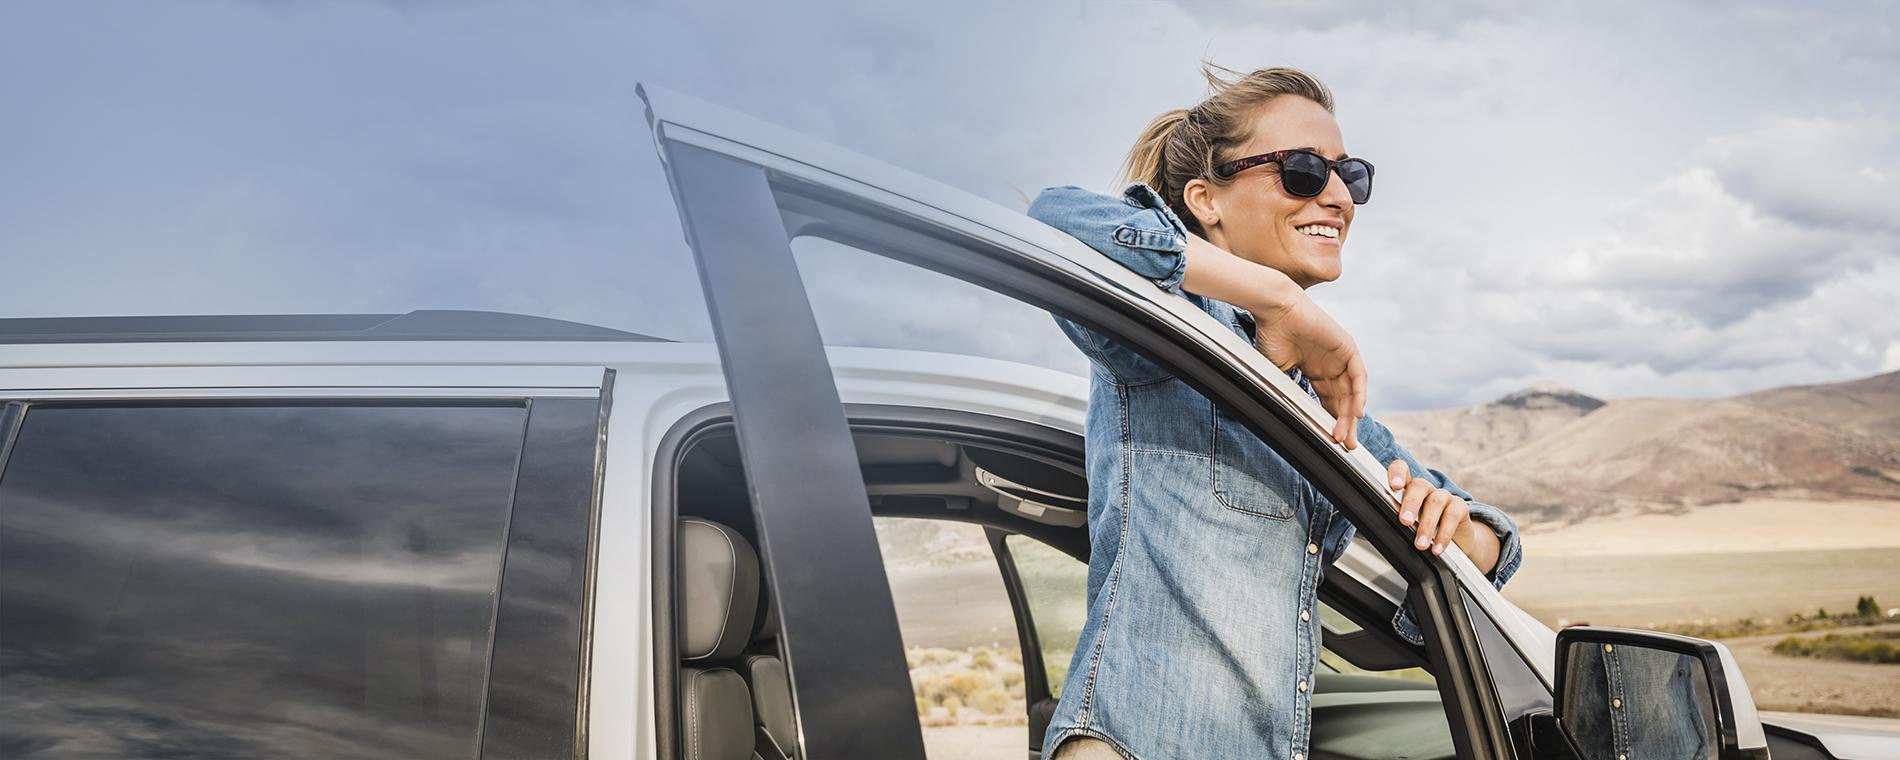 woman happy with electric vehicle coverage